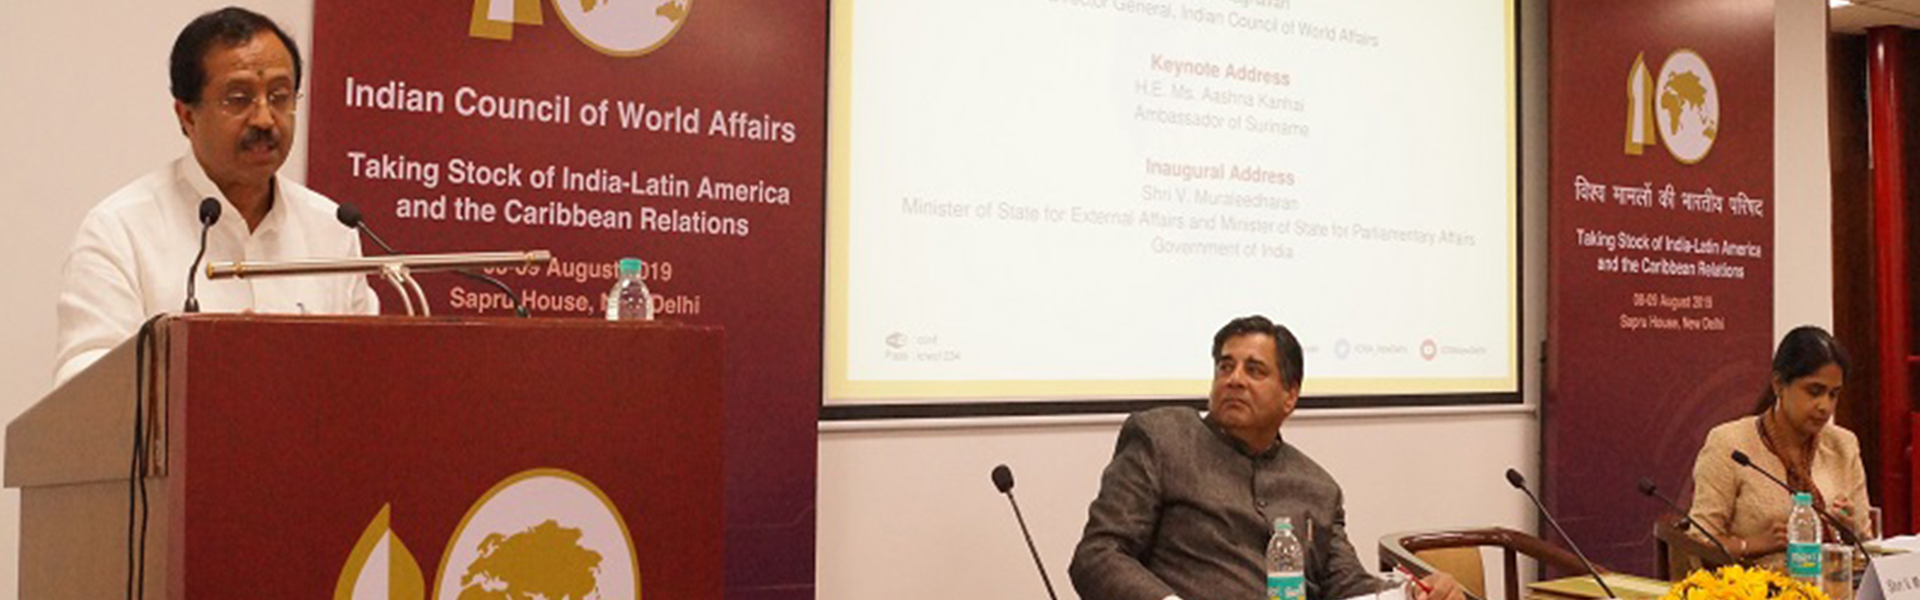 "Shri V. Muraleedharan, Minister of State for External Affairs and Minister of State for Parliamentary Affairs delivering Special Address at the Inaugural Session of National Seminar on ""Taking Stock of India-Latin America and Caribbean Relations"", 8 August 2019"